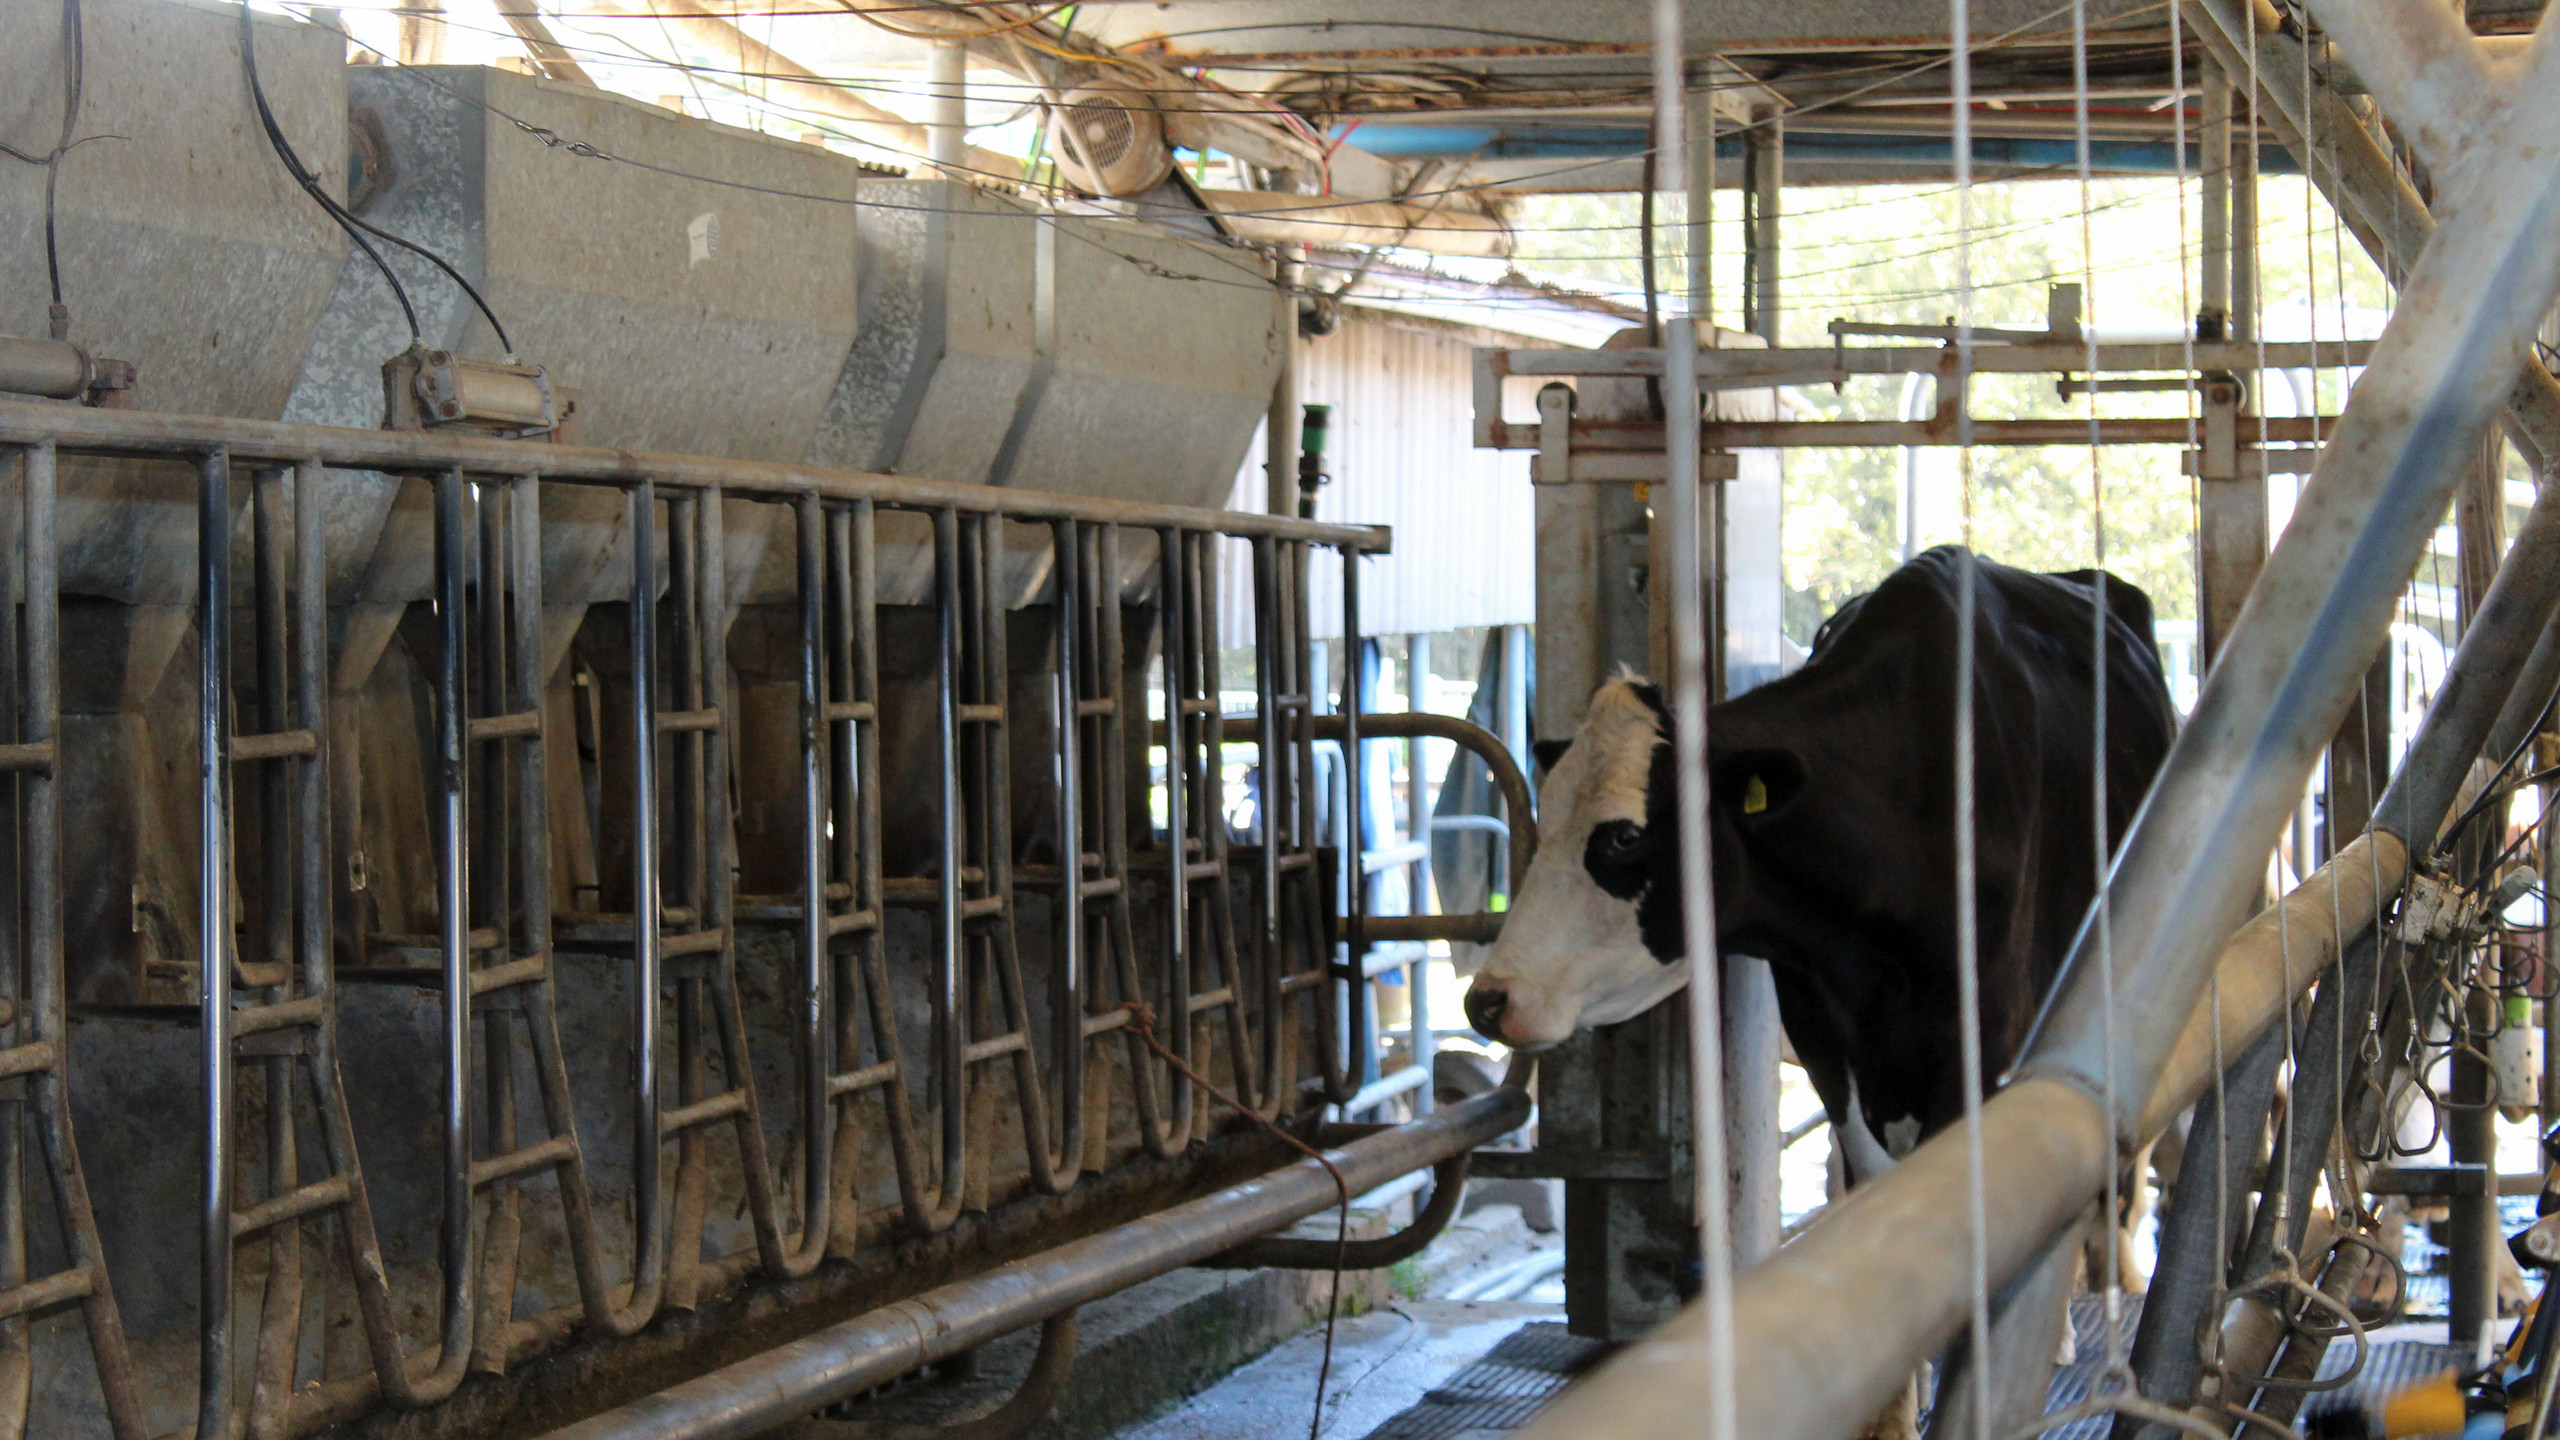 The cows come in and line up to be milked. There's a sort of pecking order, some prefer to be at the front.